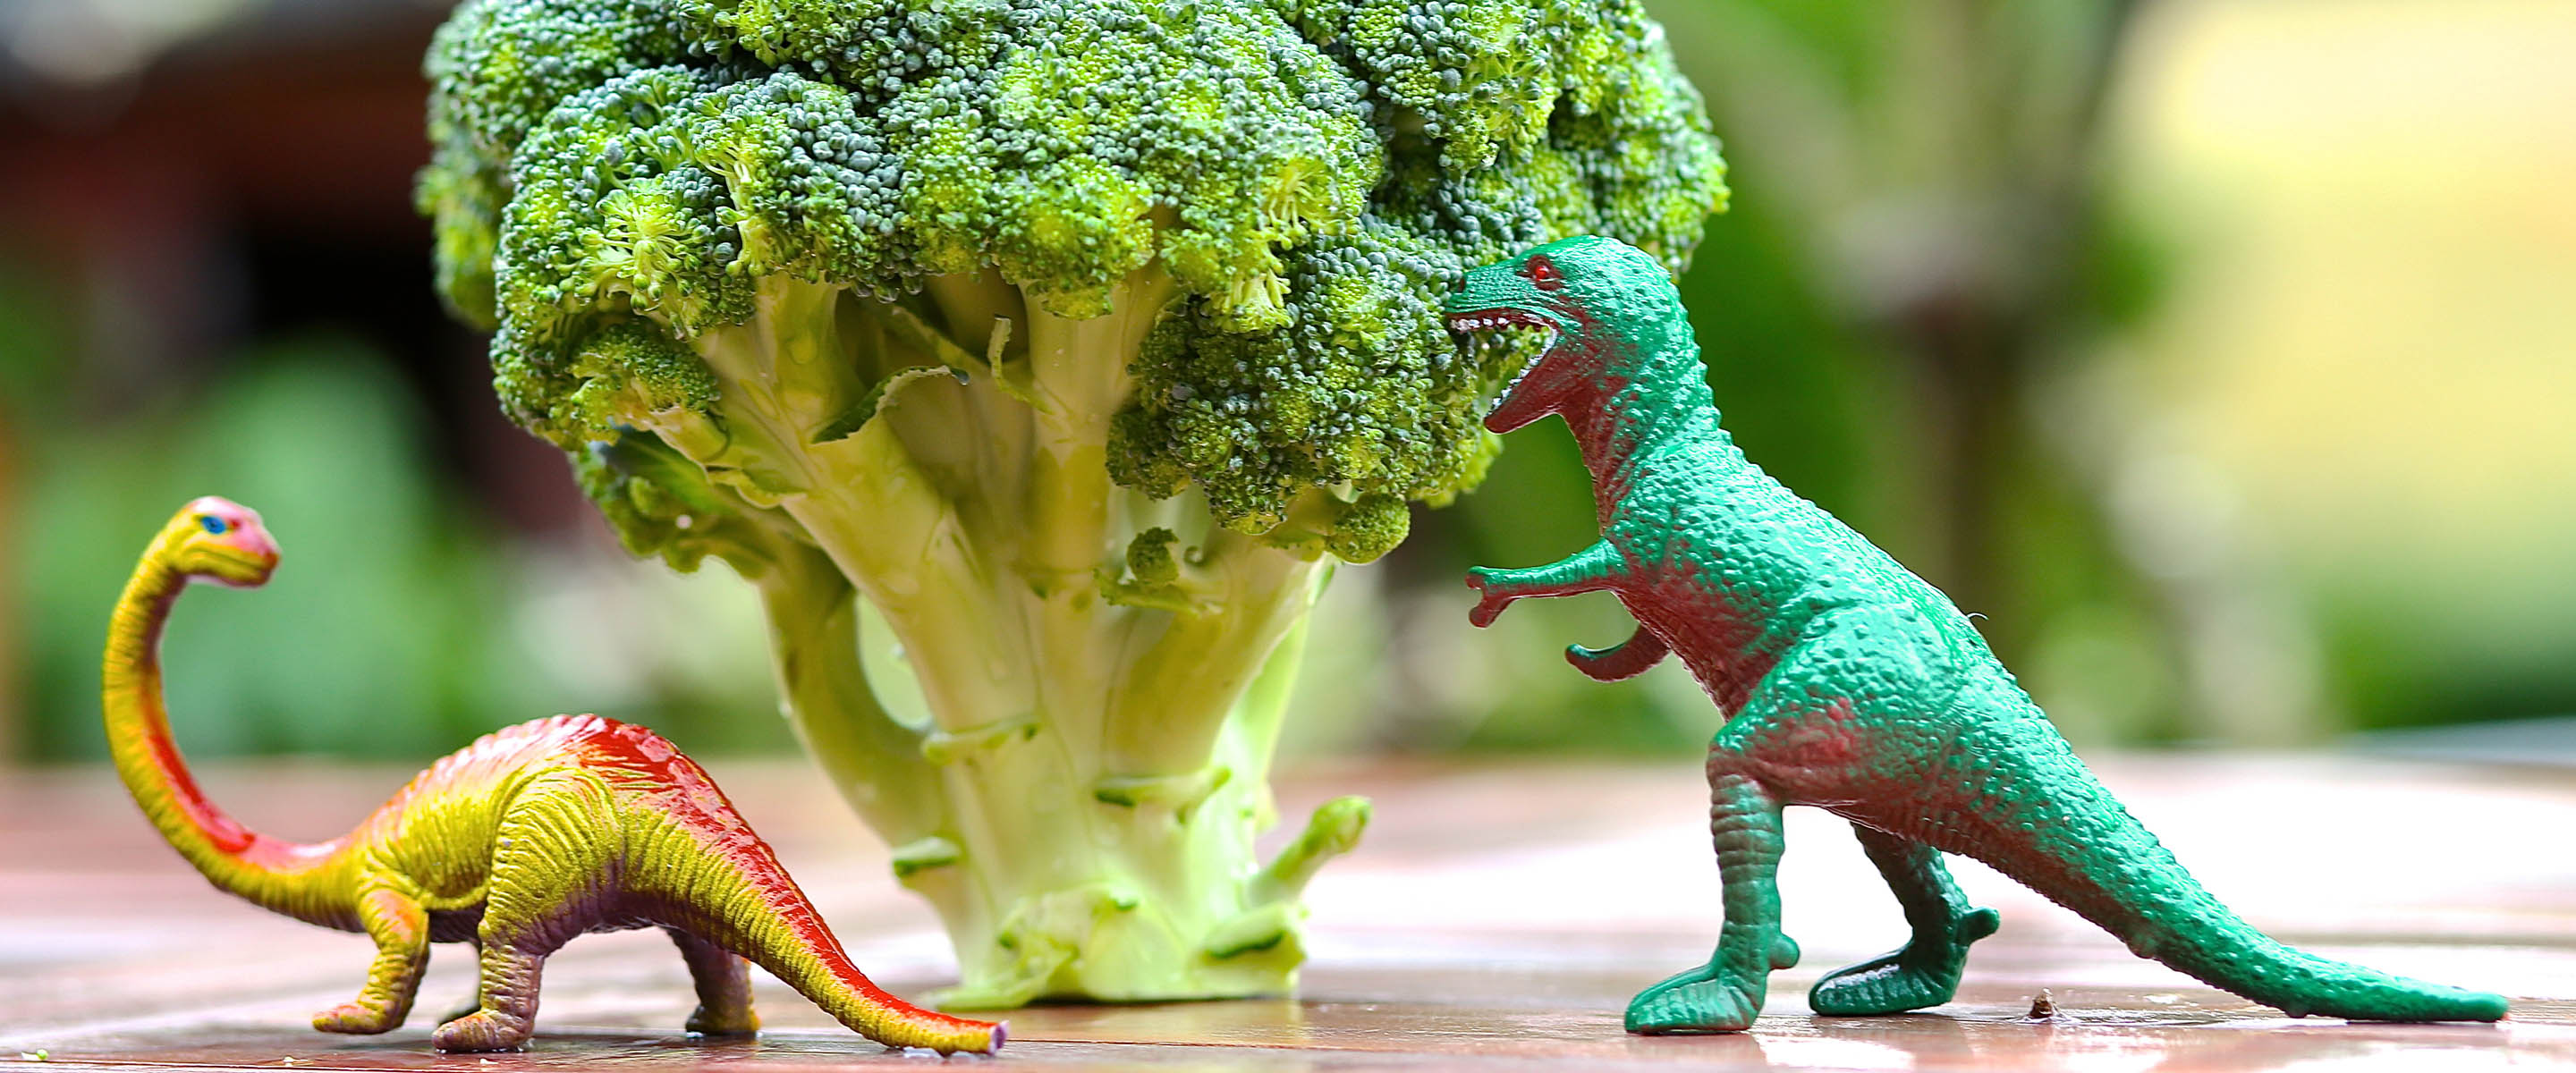 Dinosaurs eating brocoli